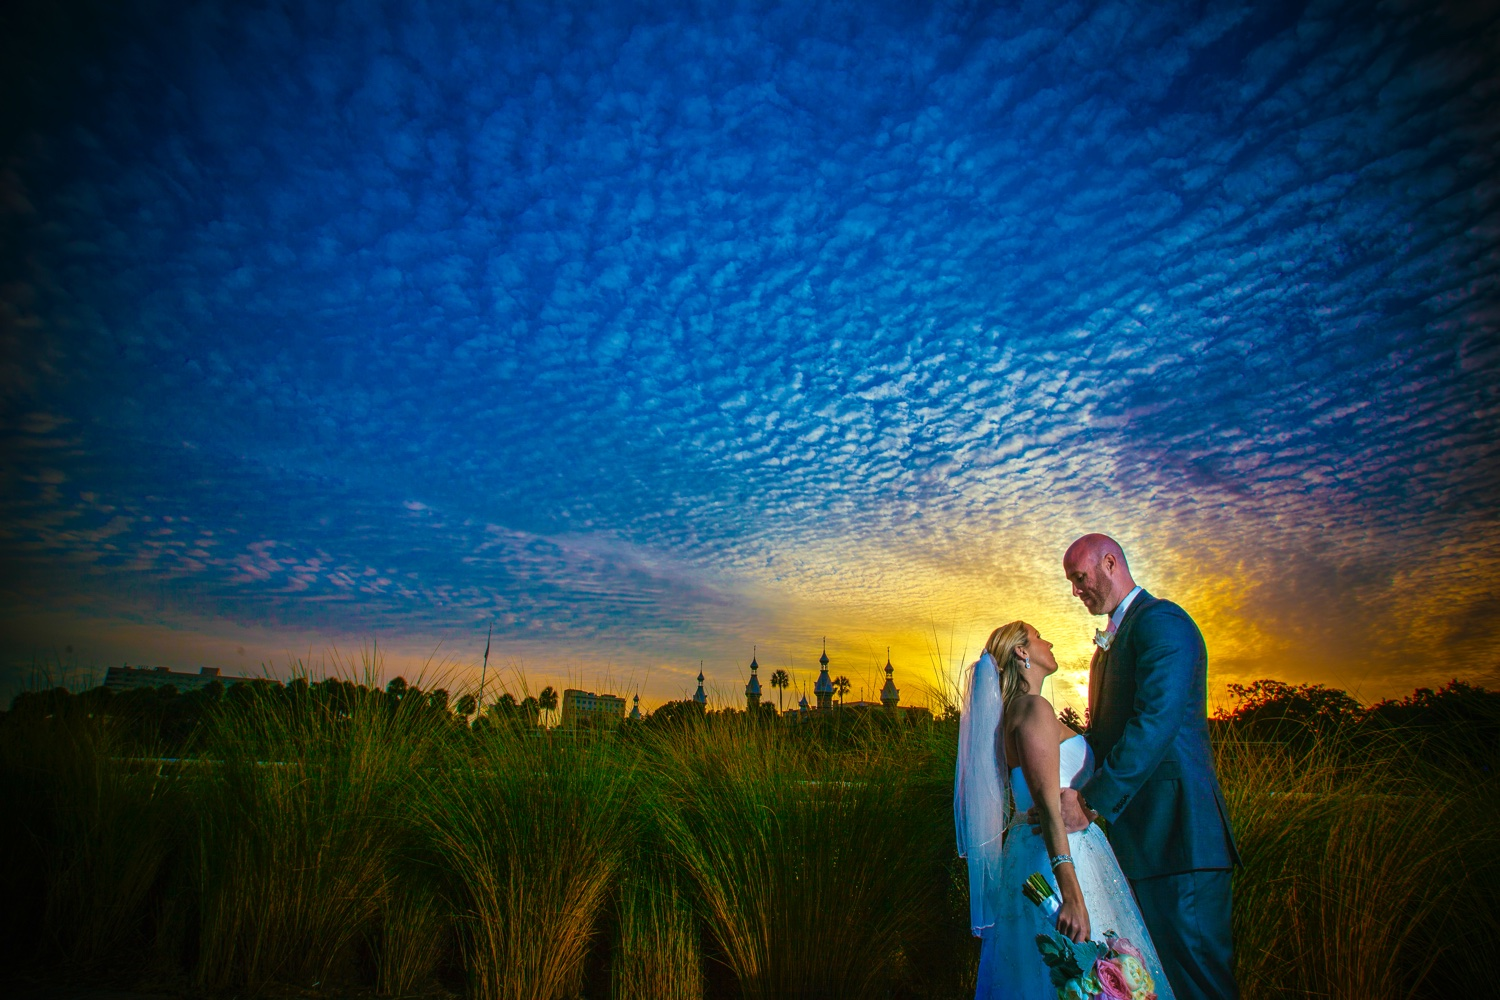 029-2014-2015_top30_by_orlando_wedding_photographer_brianadamsphoto.com.jpg